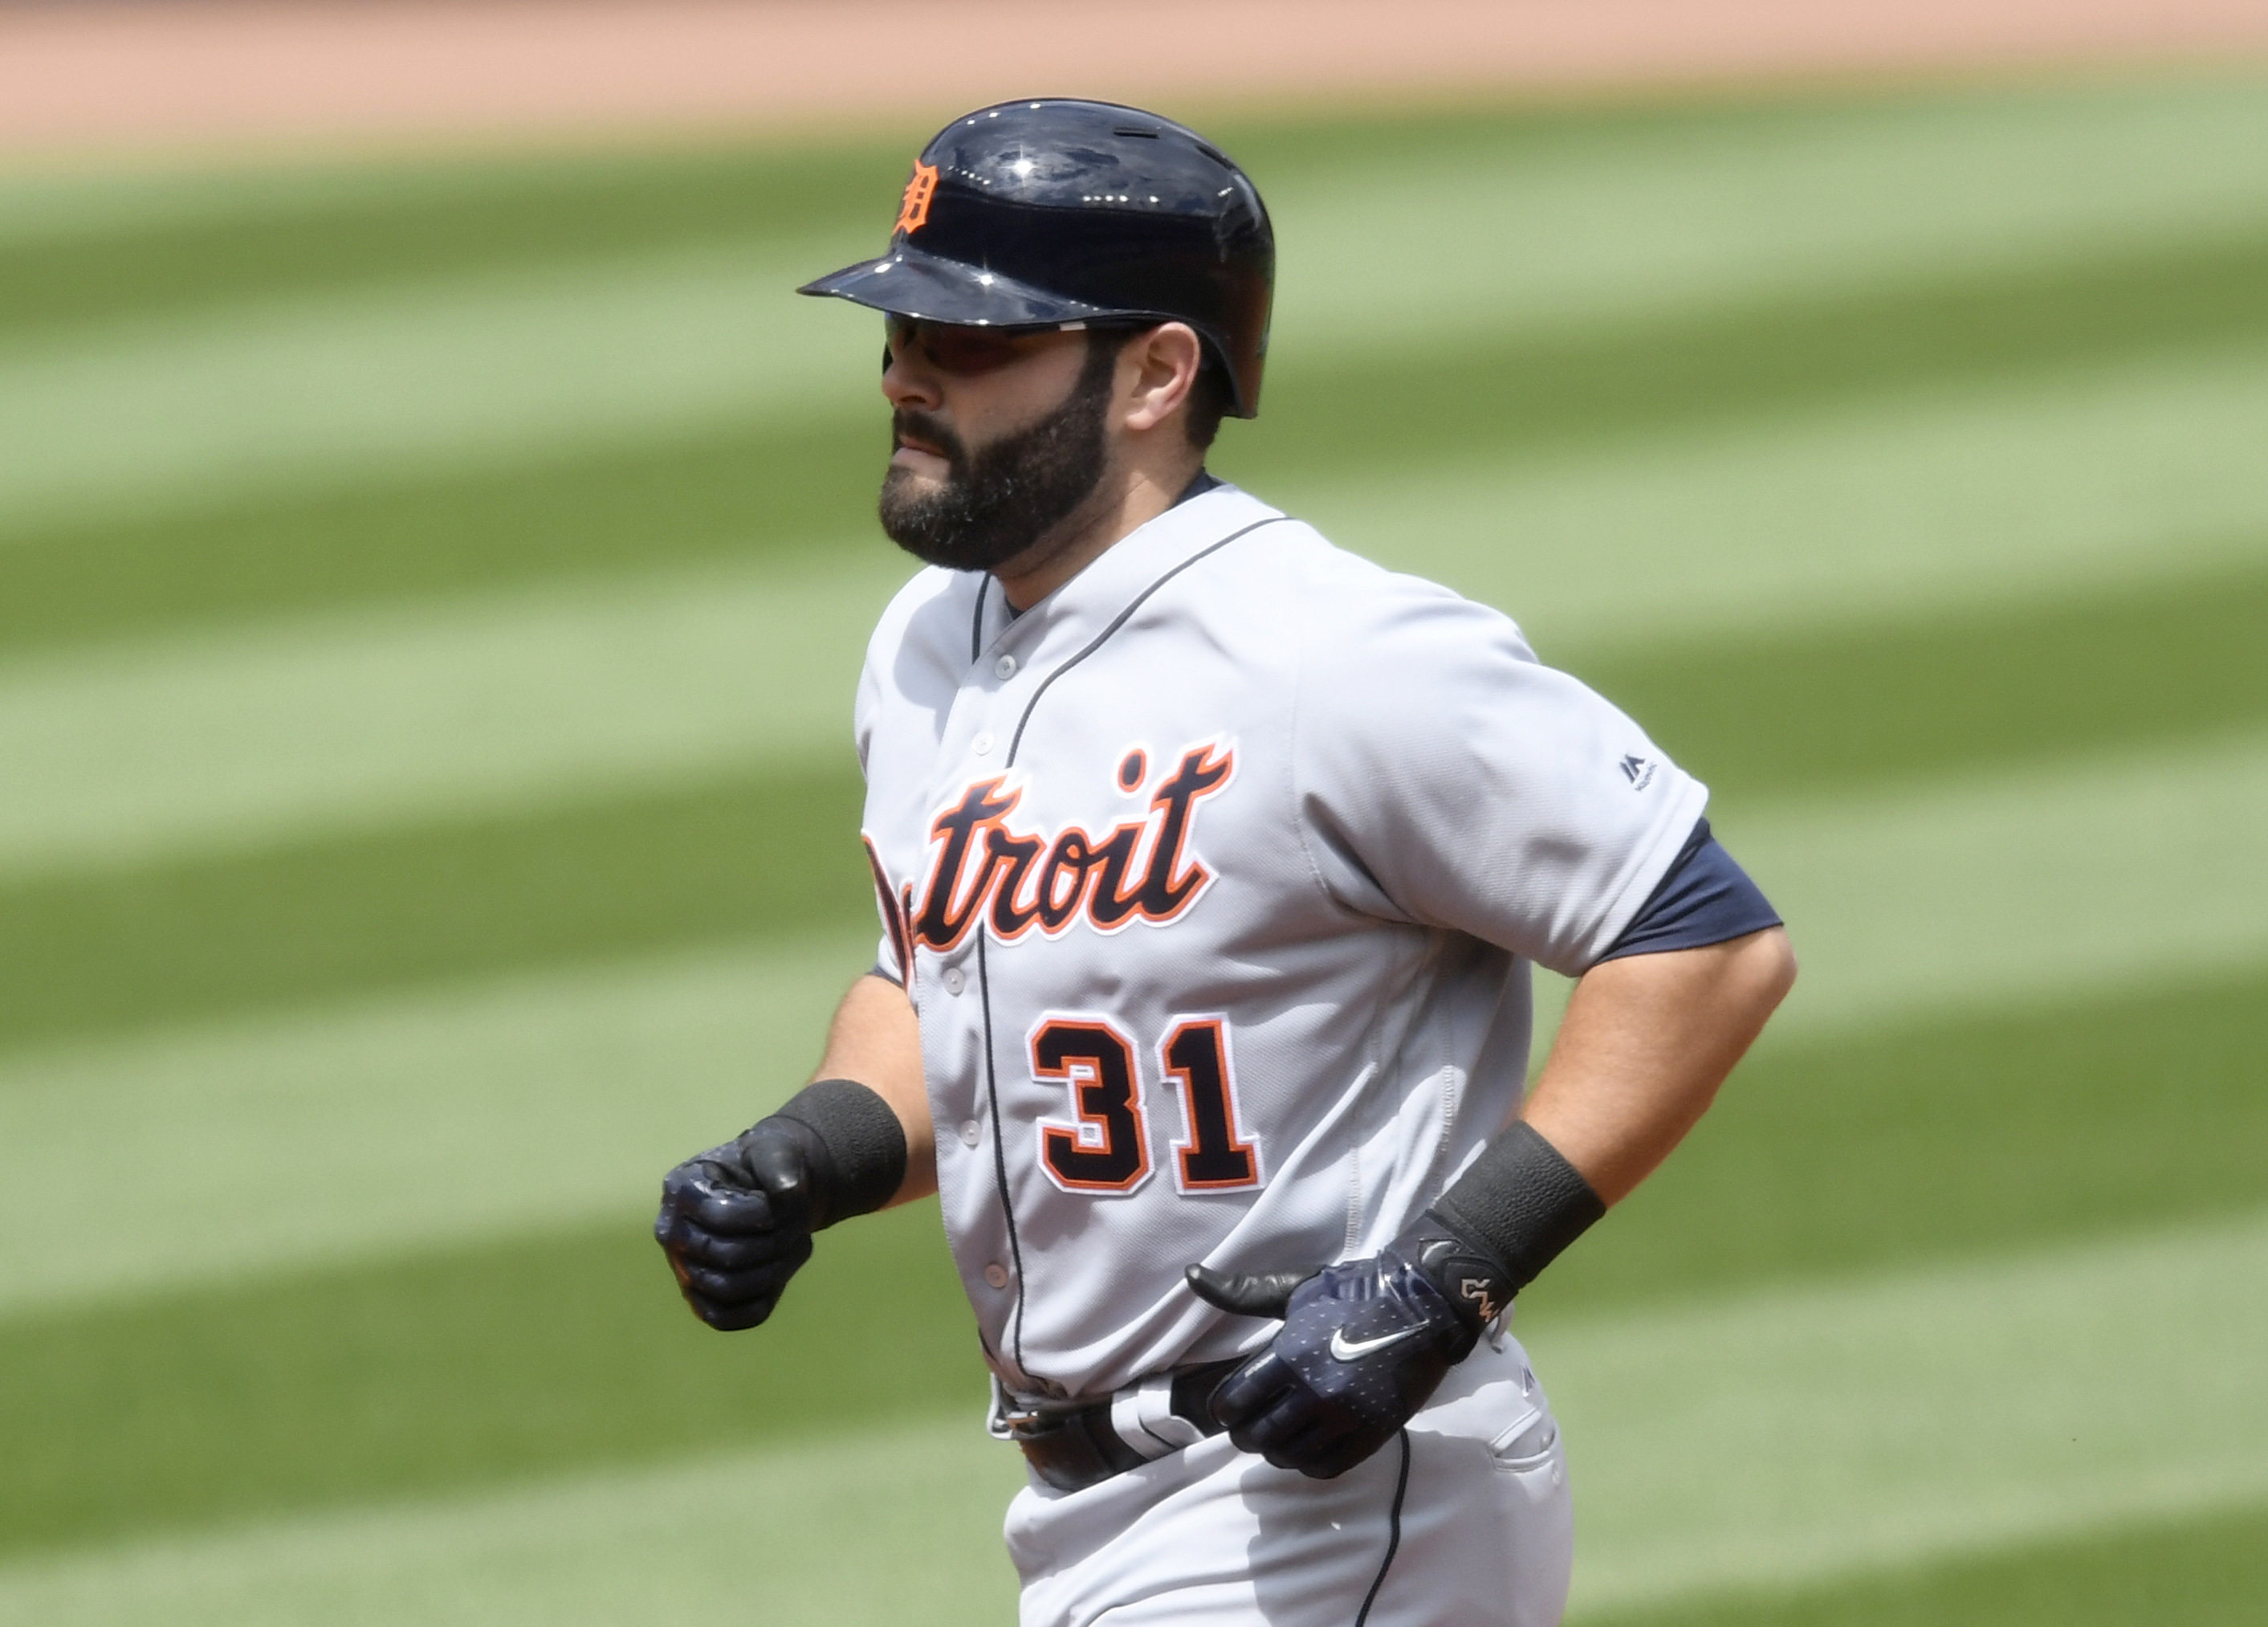 Detroit Tigers: Alex Avila Continues Hot Start in Second Stint with Team